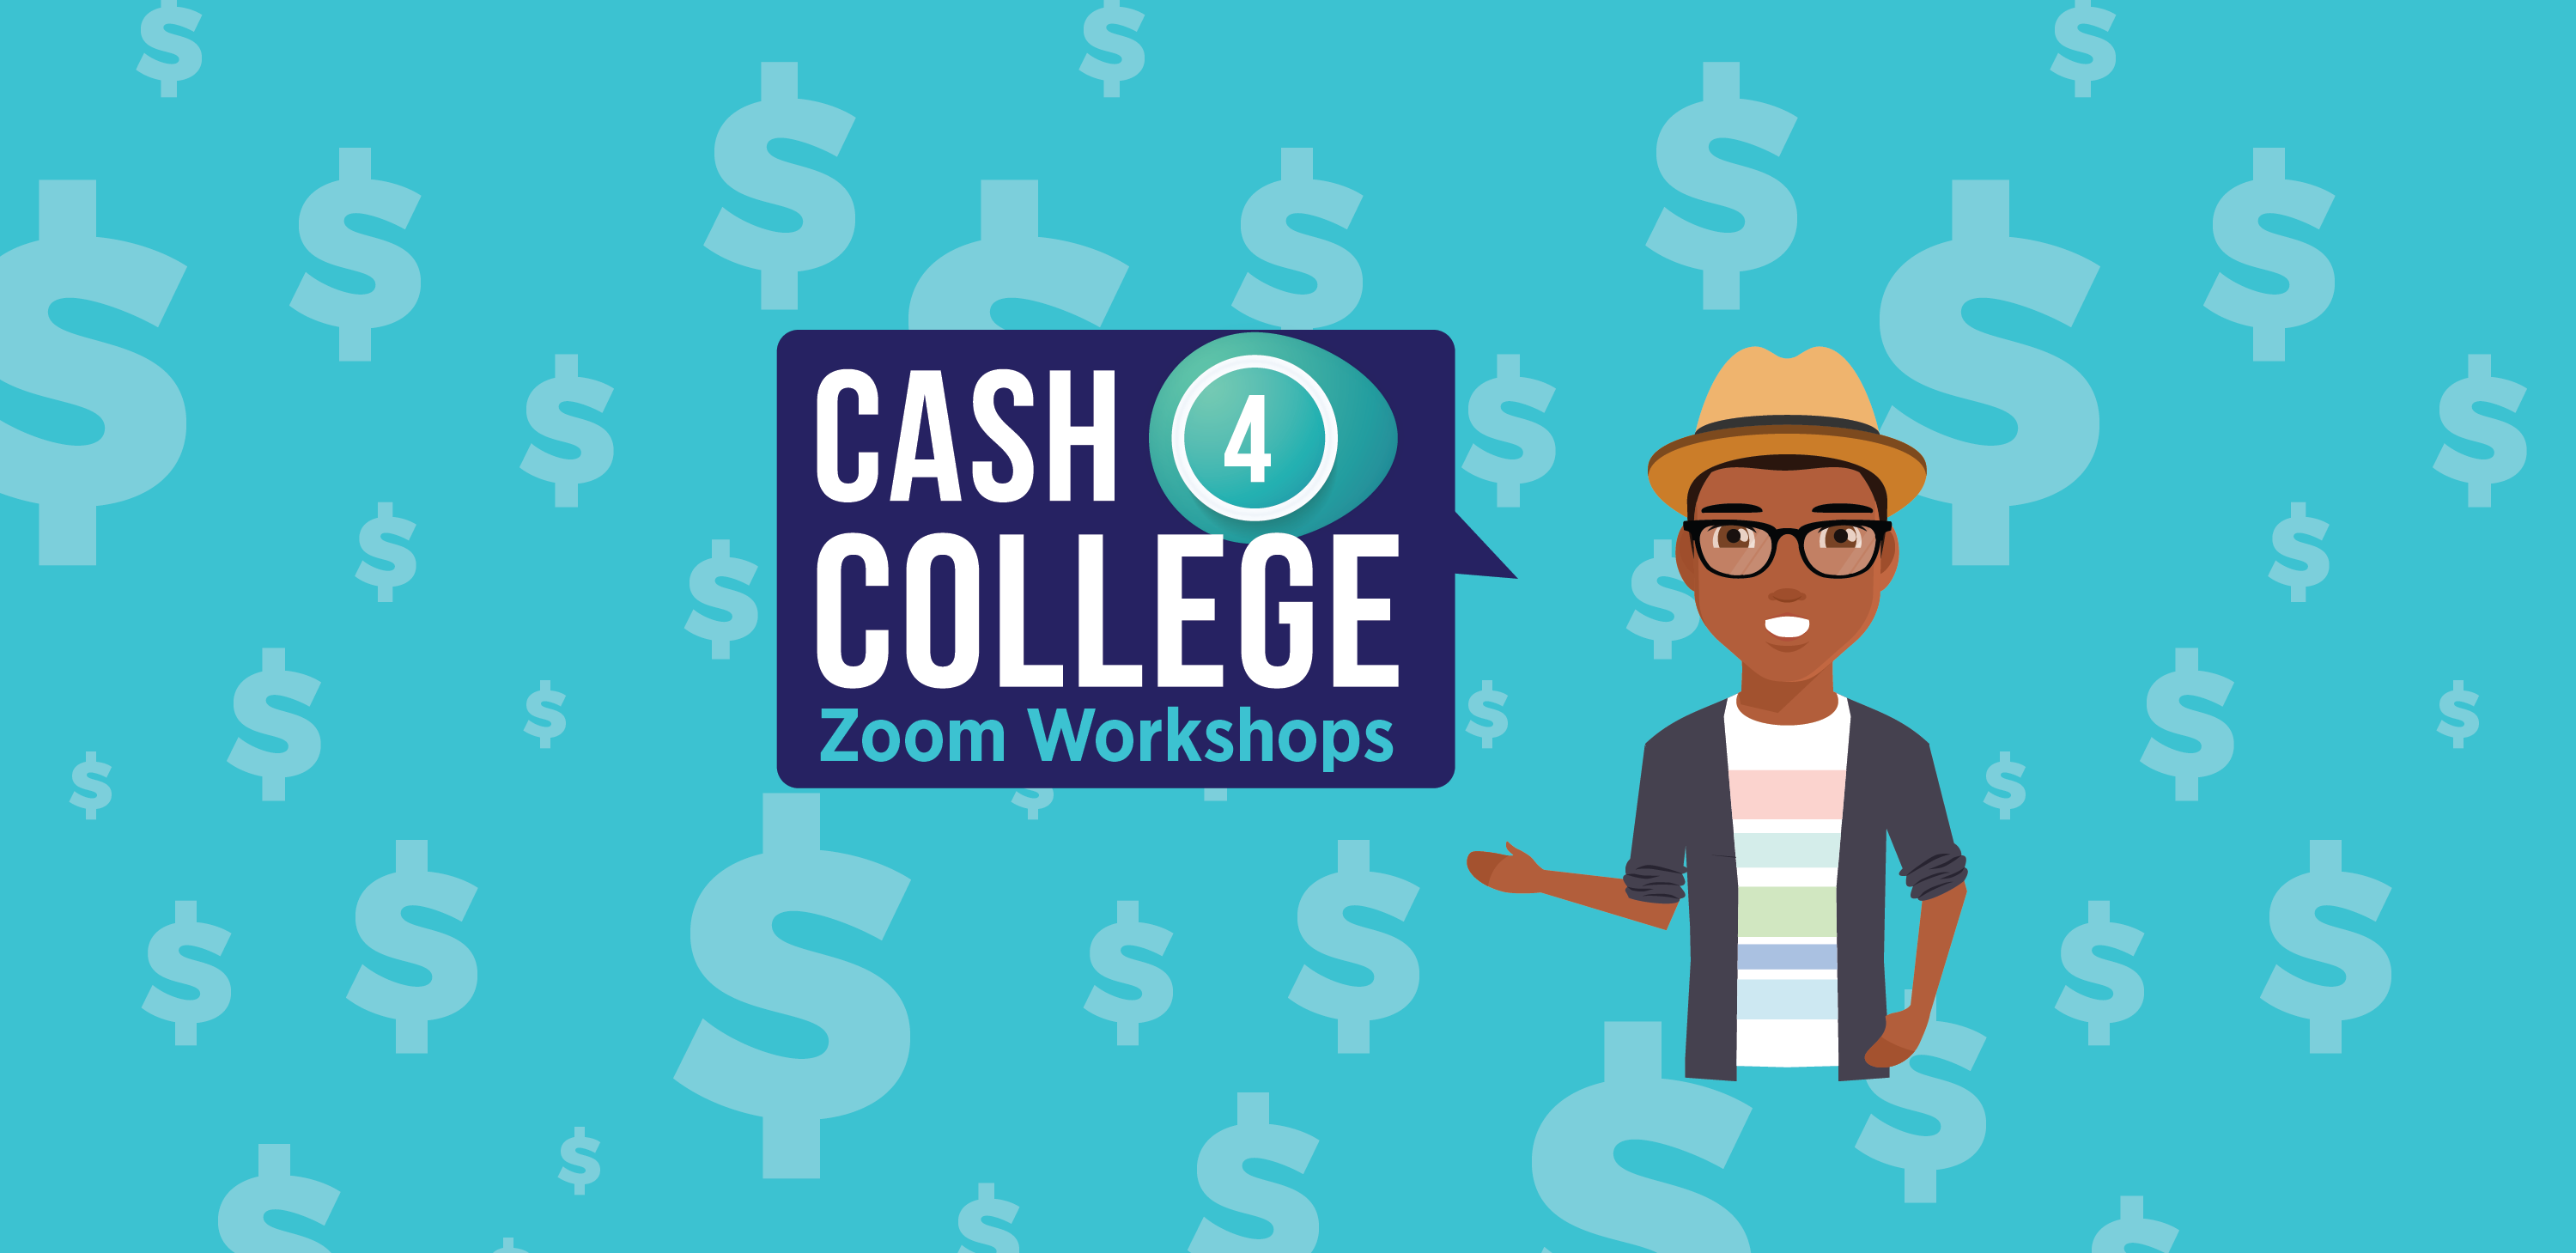 Illustration of a person with a speech bubble that says: Cash 4 College Zoom Workshops